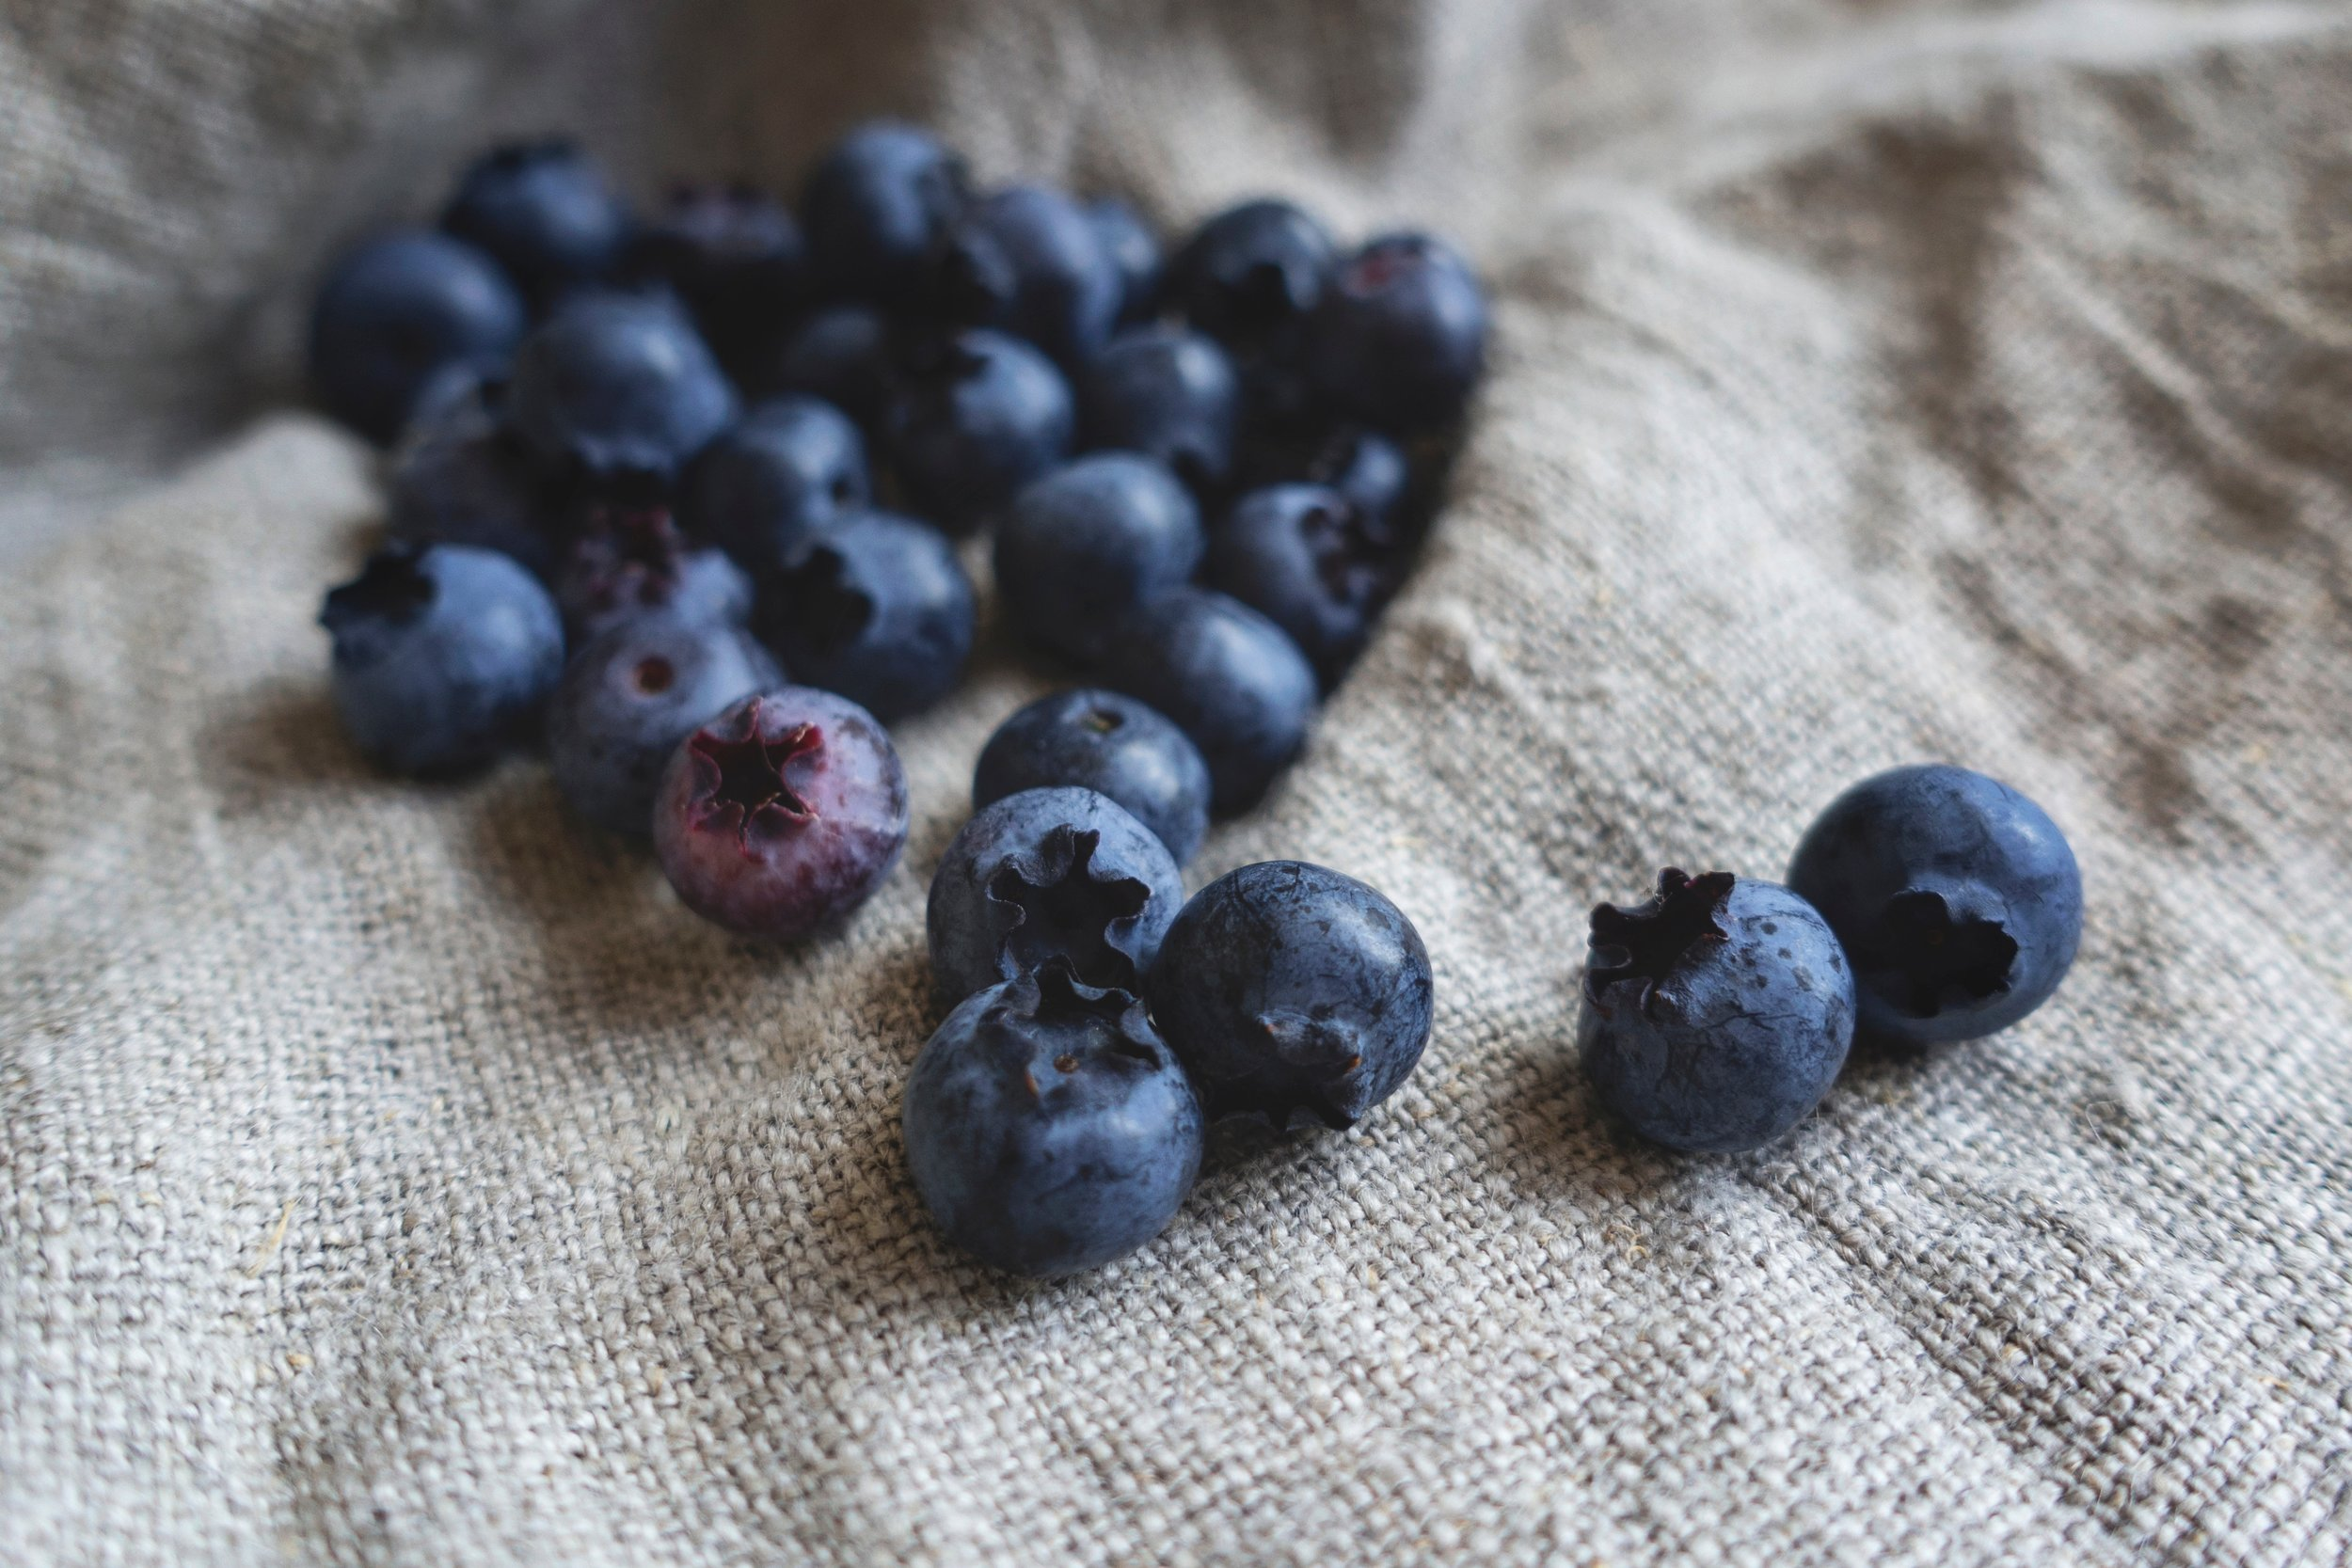 Blueberries are powerful antioxidants, which slow the aging process.